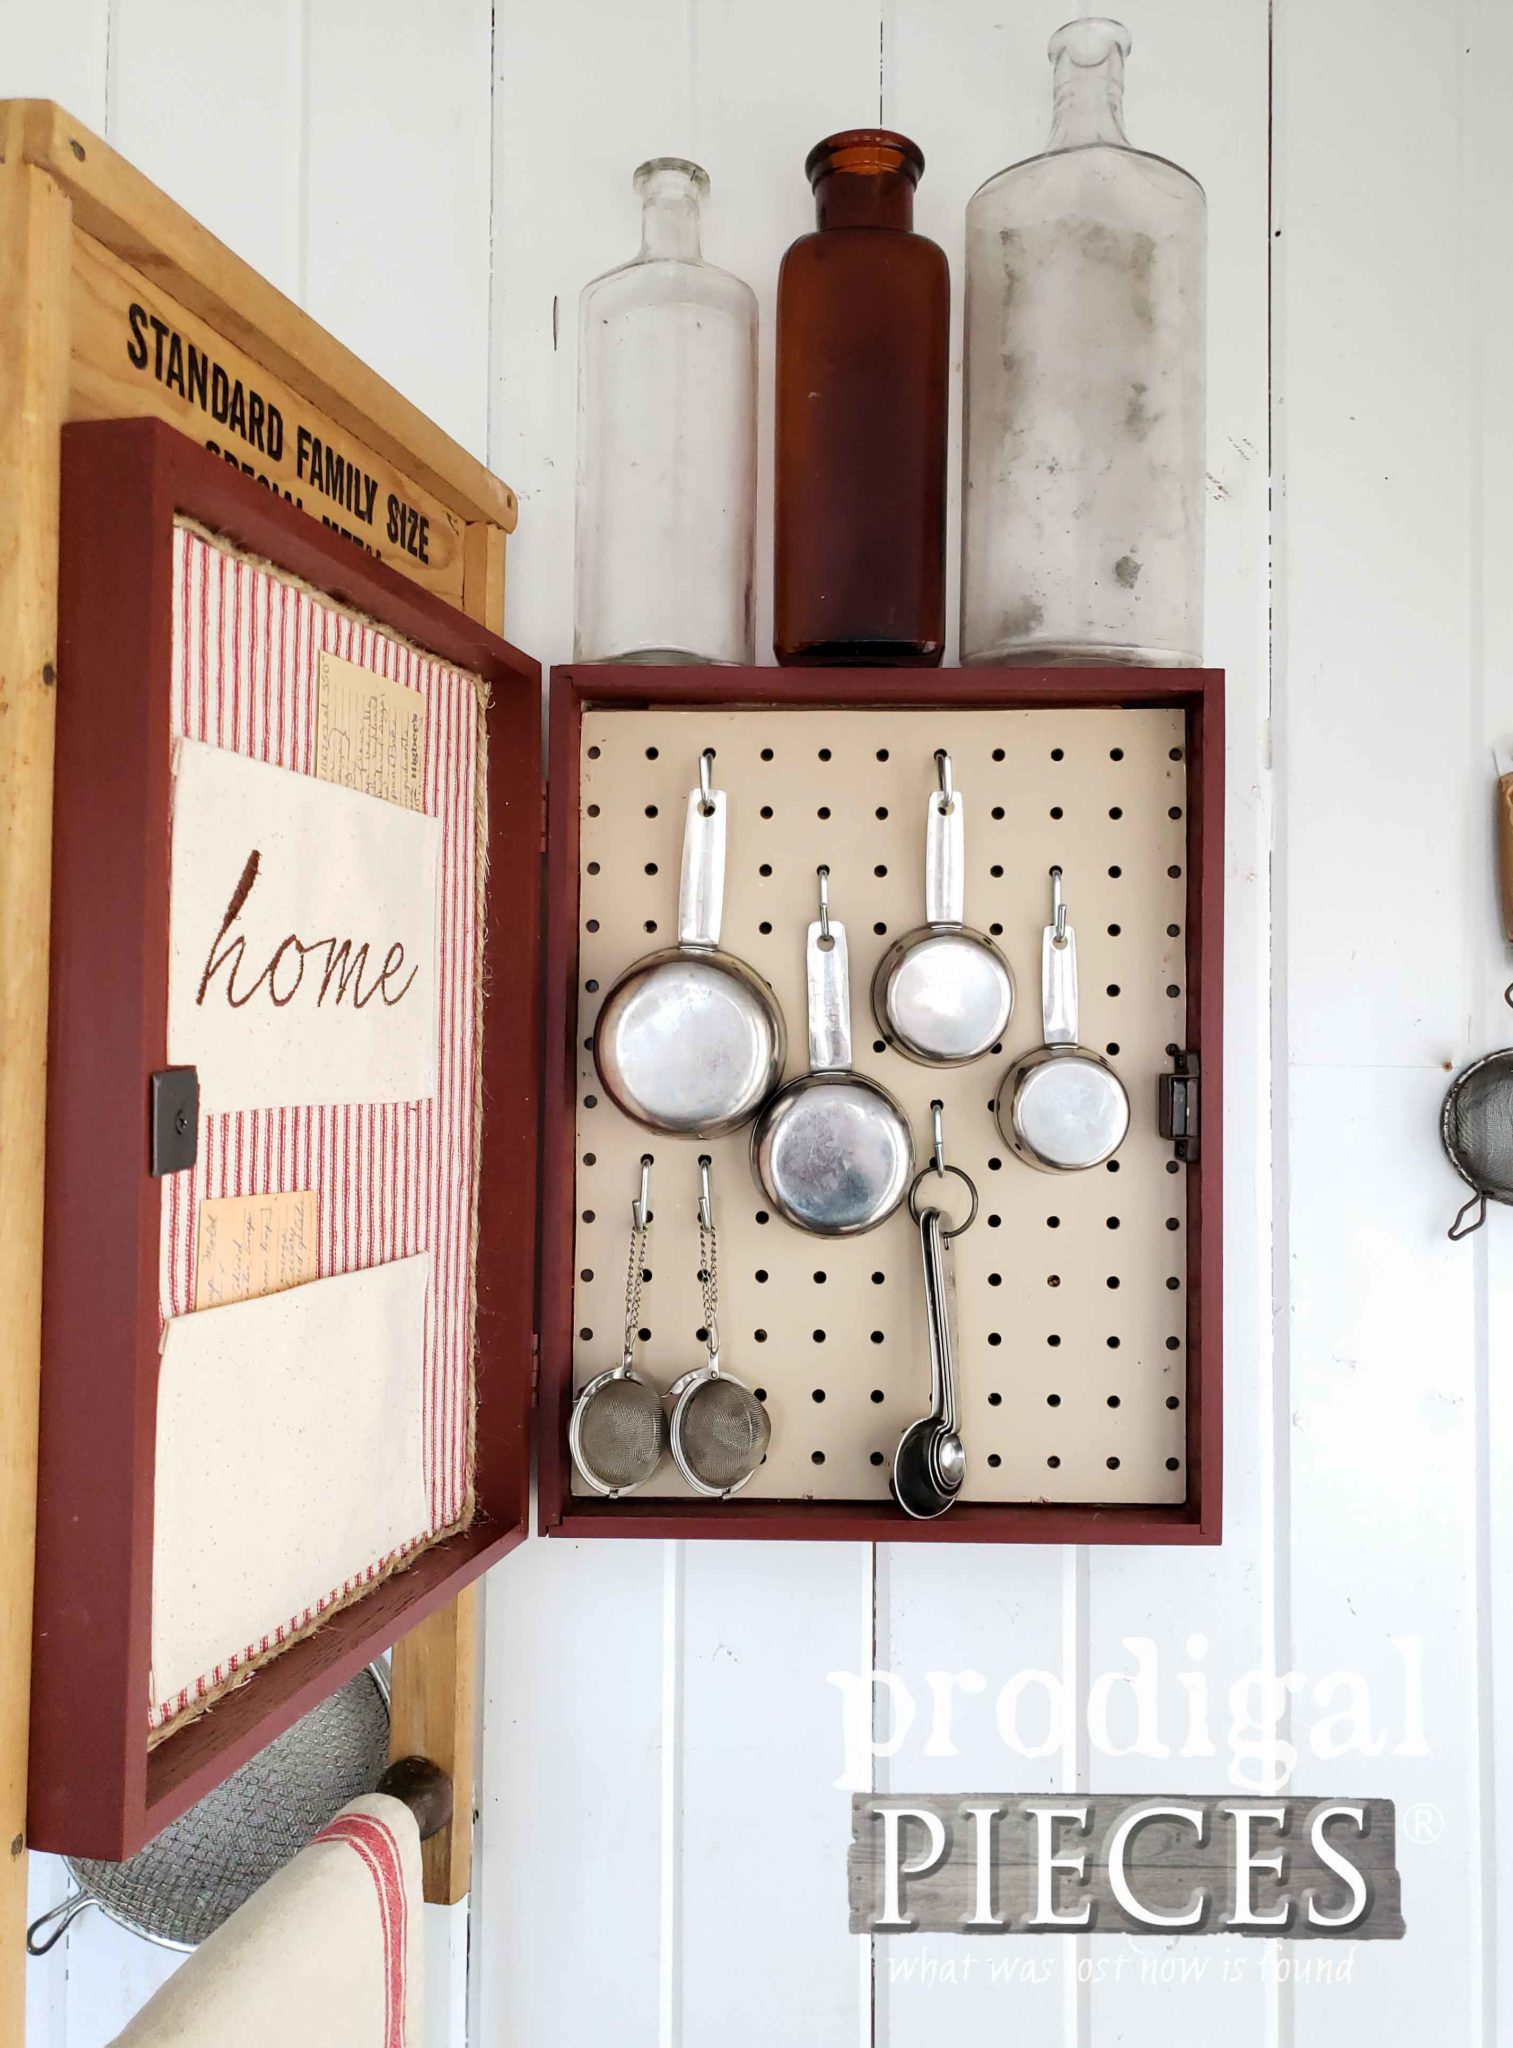 Farmhouse Kitchen Storage Using and Upcycled Washboard and Silverware Box to Create Wall Art | by Larissa of Prodigal Pieces | prodigalpieces.com #prodigalpieces #handmade #diy #home #farmhouse #vintage #homedecor